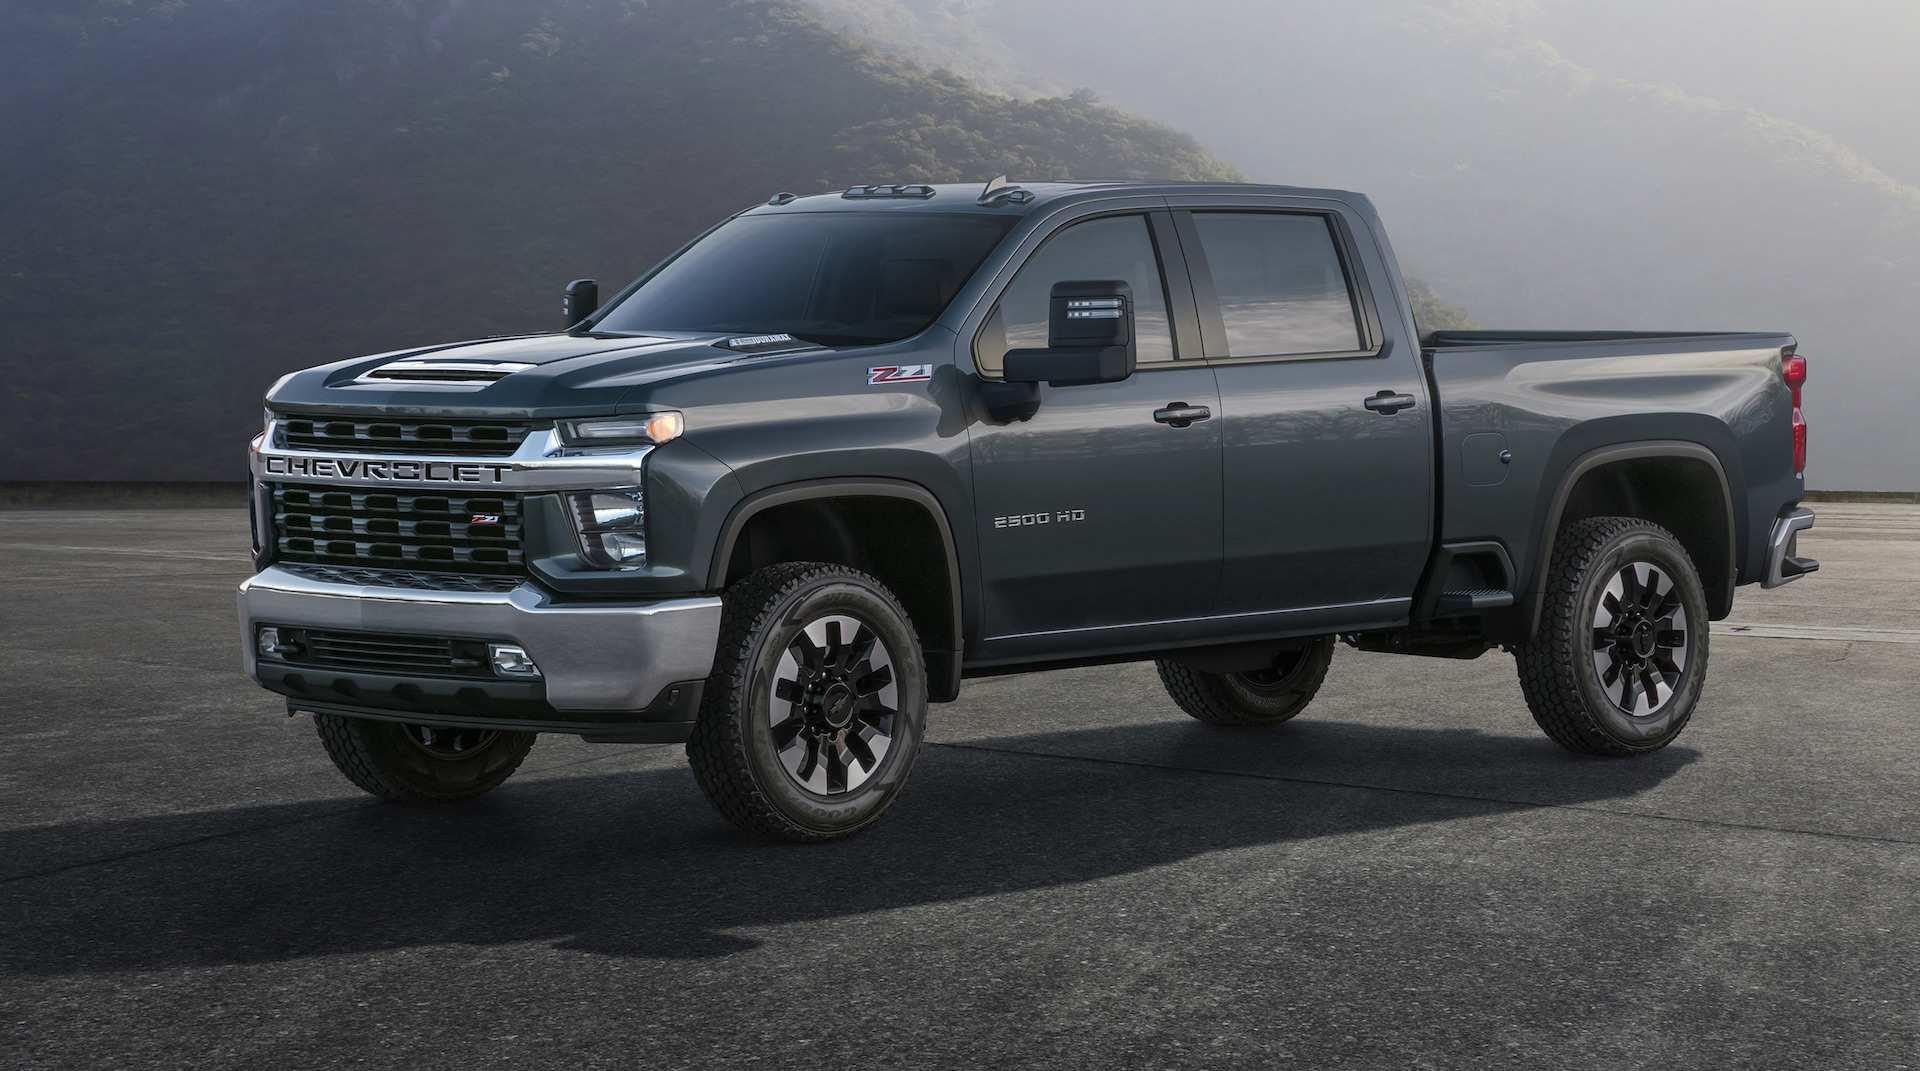 20 Best 2020 Chevrolet Hd Pickup Research New